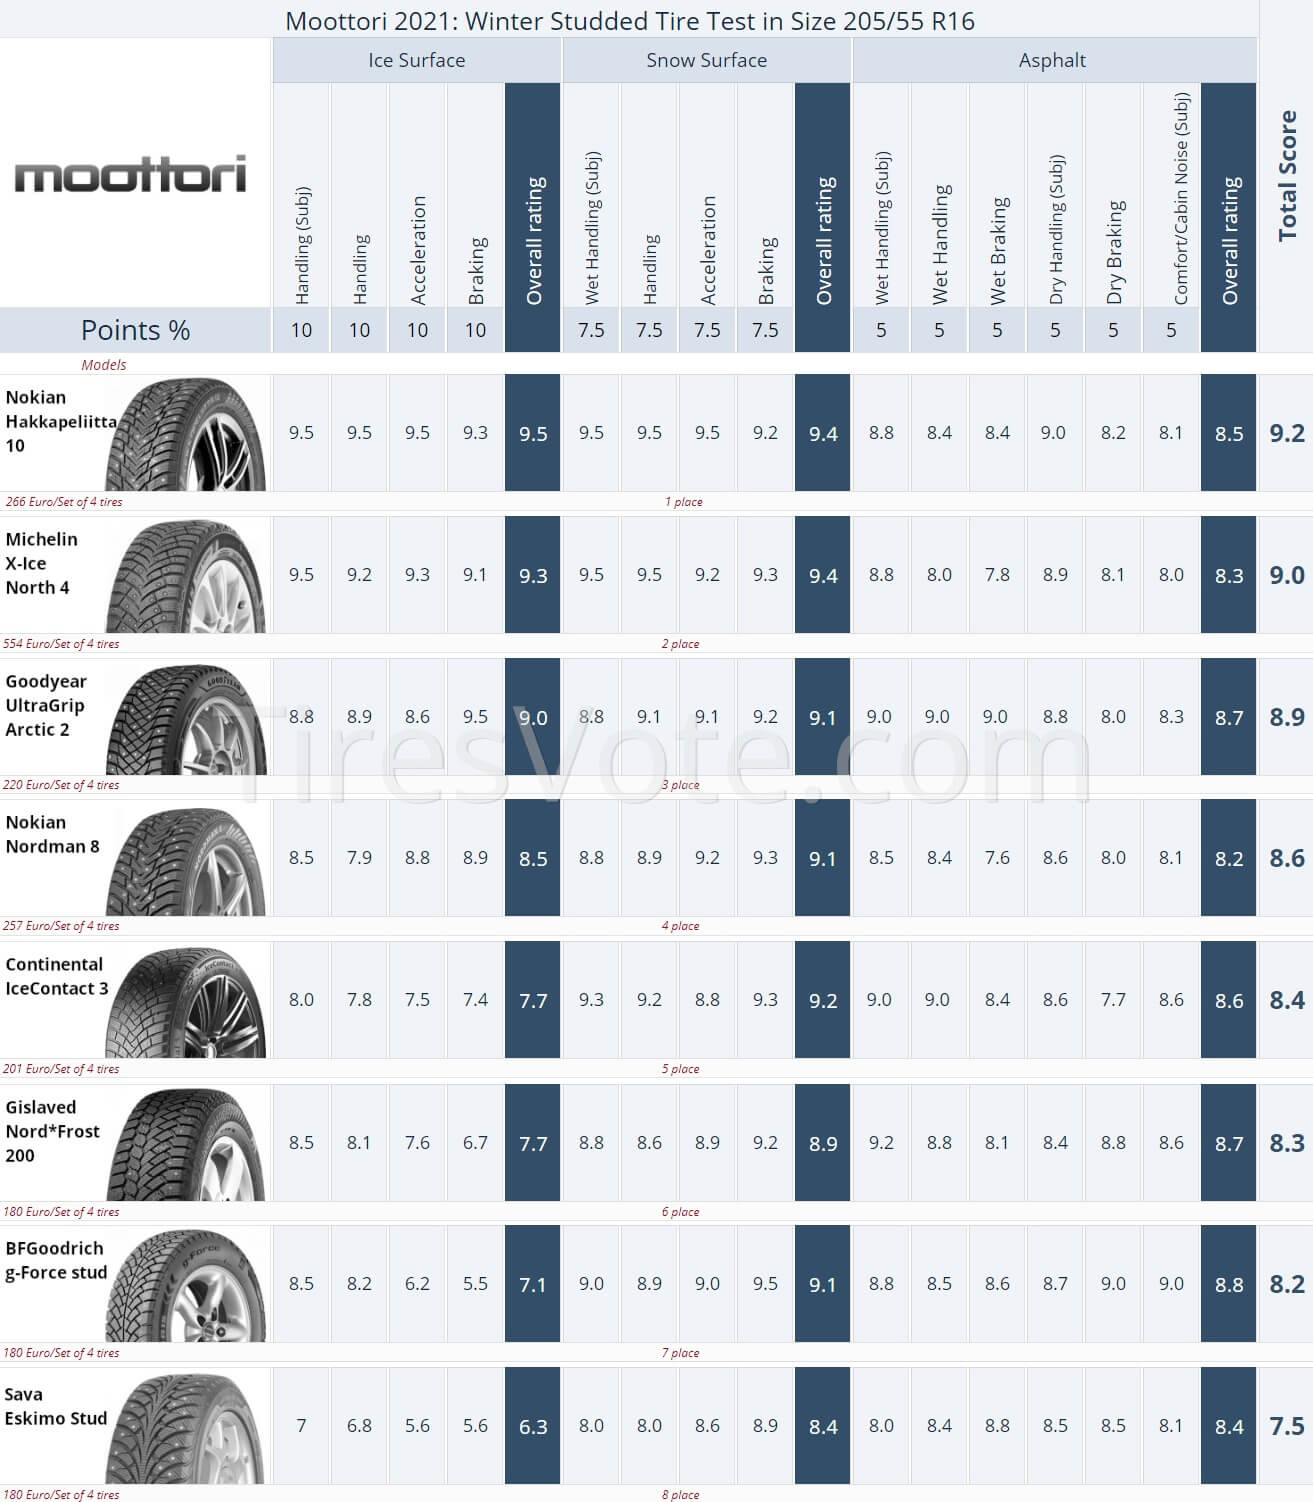 Winter Studded Tire Test Summary, Moottori 205/55R16, 2021. Places 1–8. Click to enlarge.